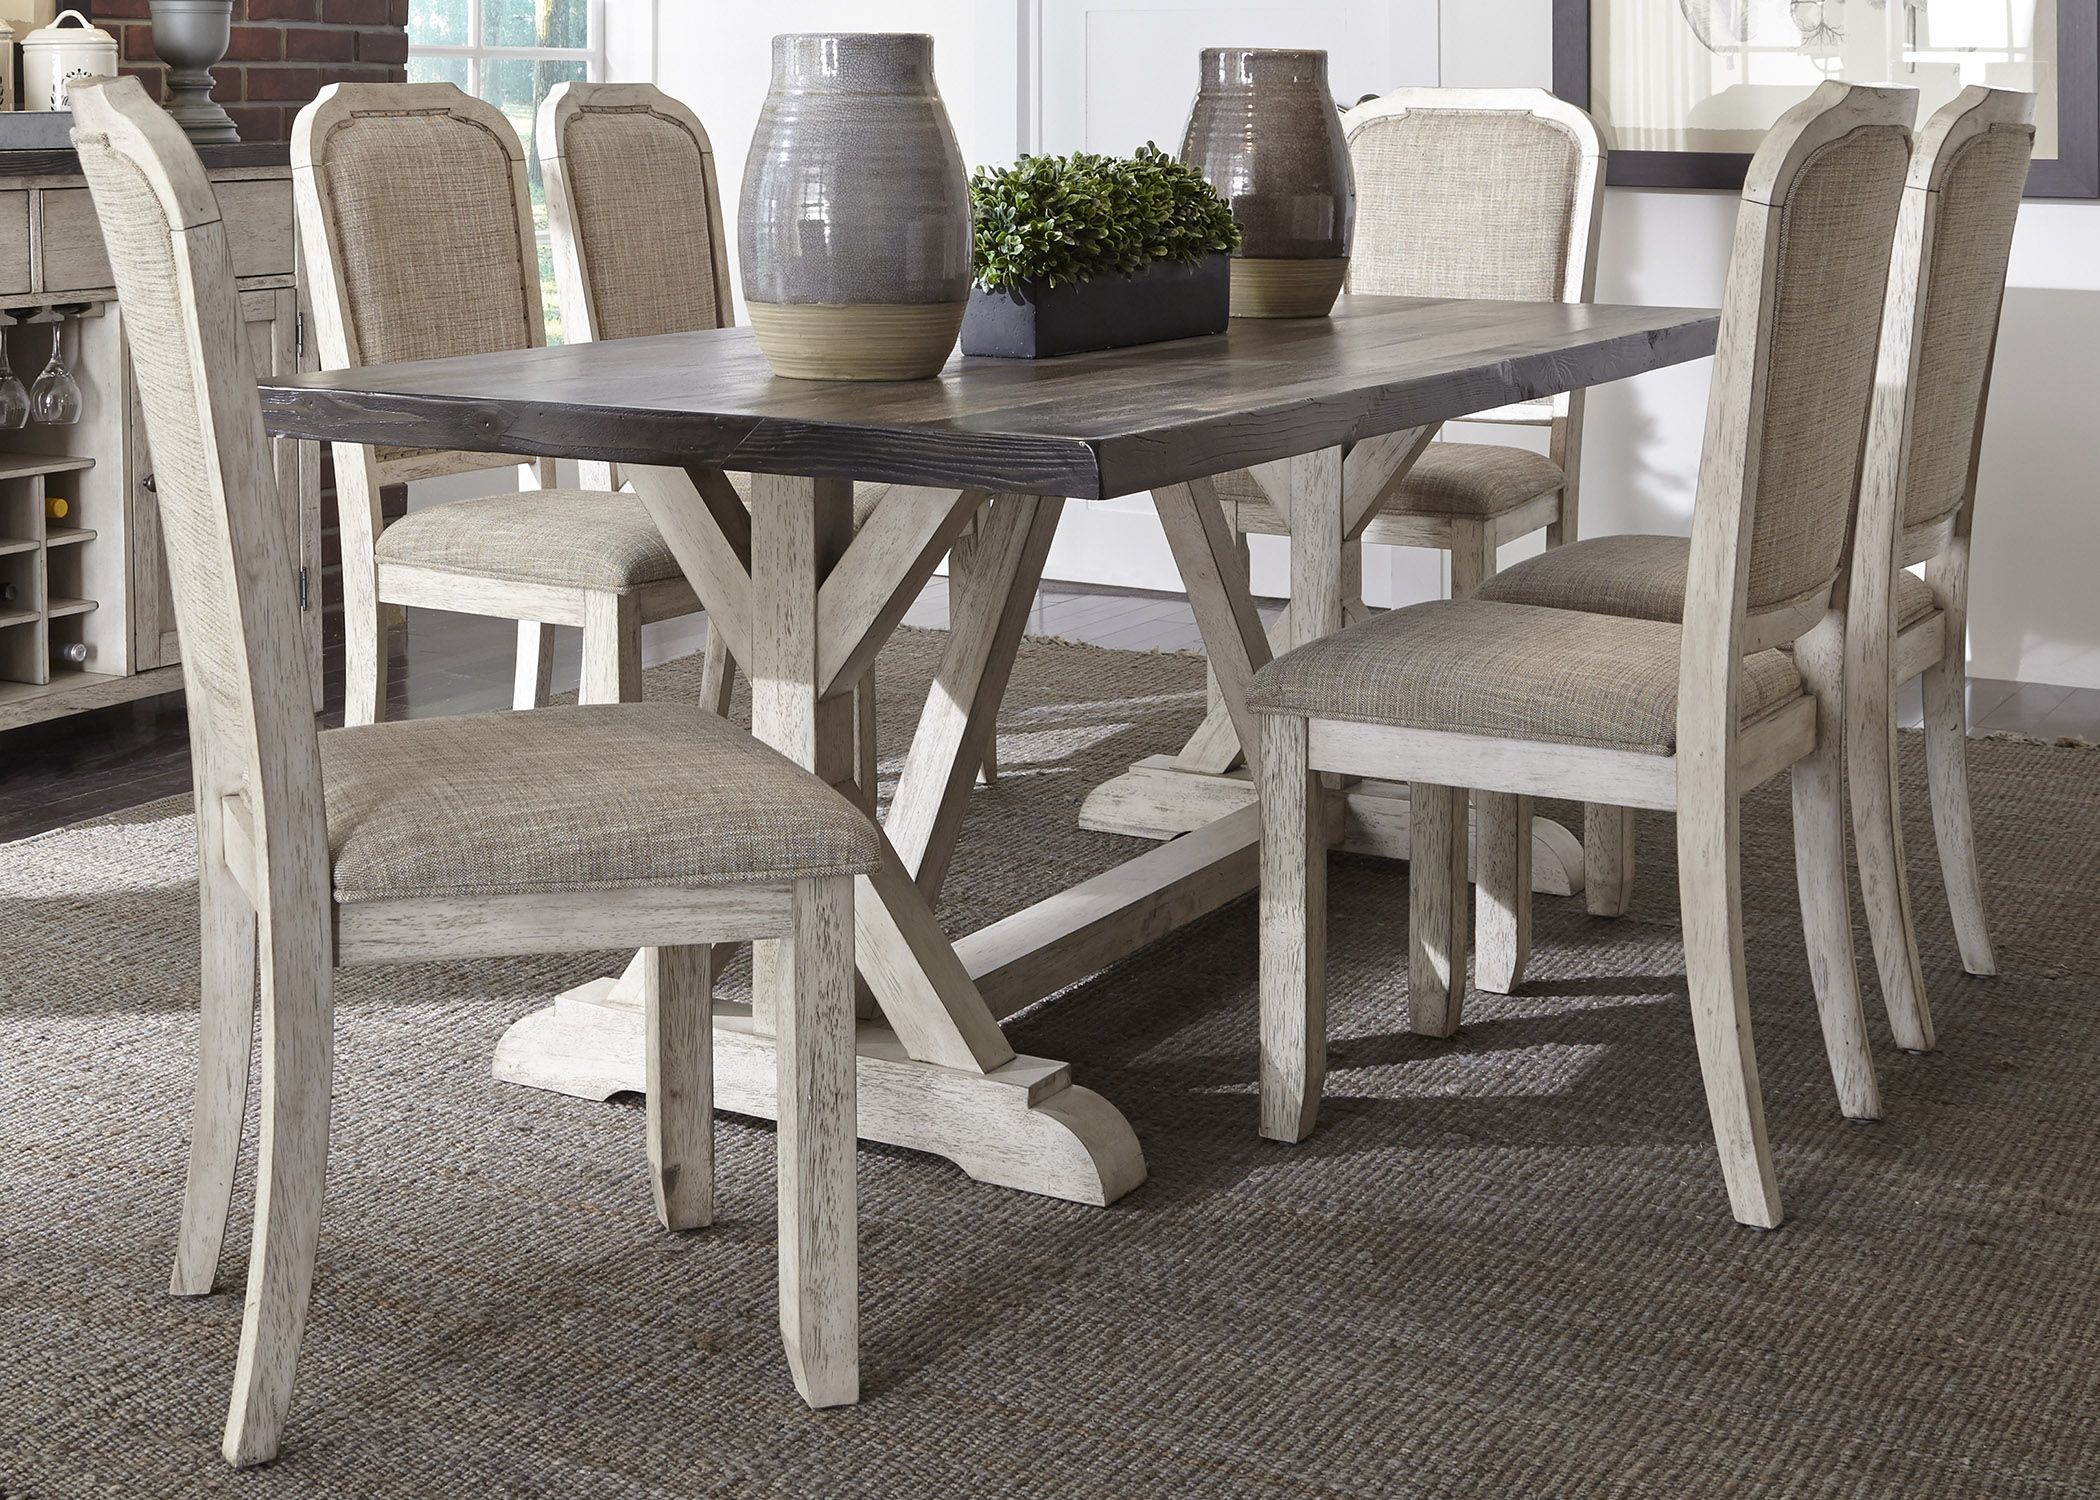 willowrun rustic white trestle dining room set 619 t3878 liberty. Black Bedroom Furniture Sets. Home Design Ideas